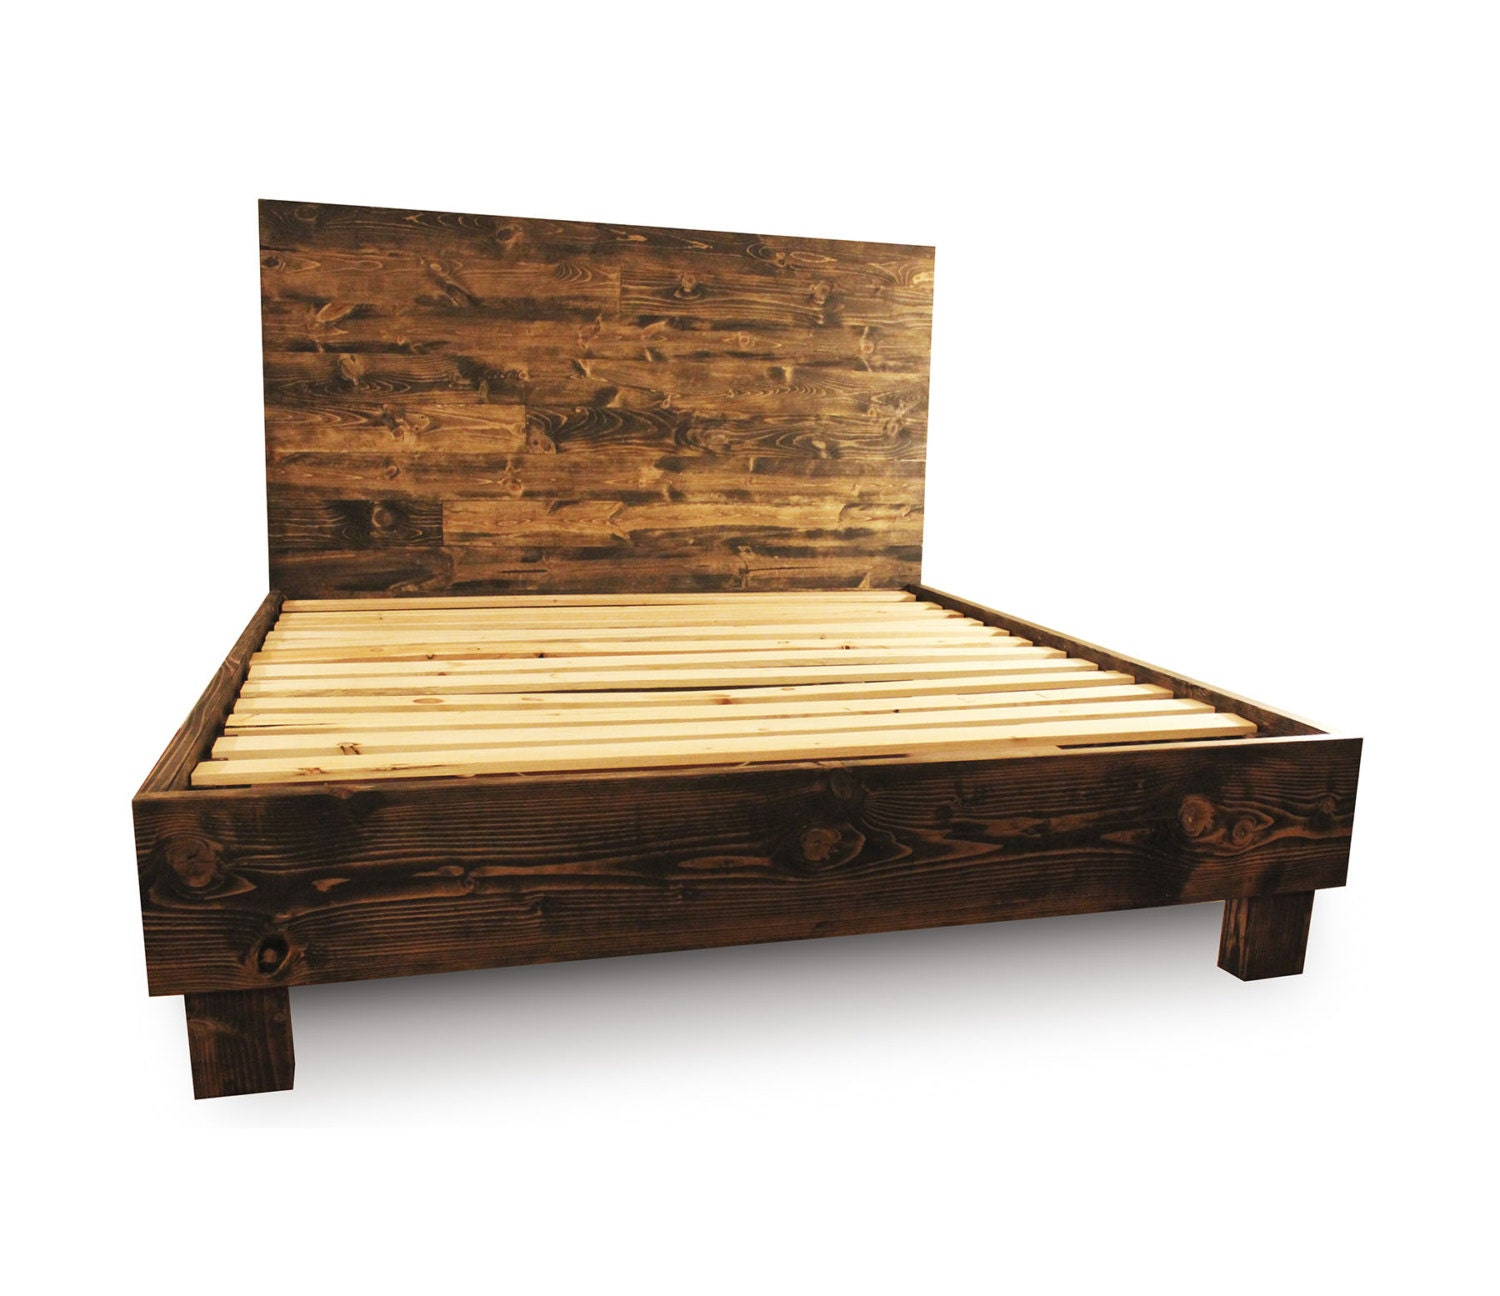 Rustic Solid Wood Platform Bed Frame & Headboard by PereidaRice